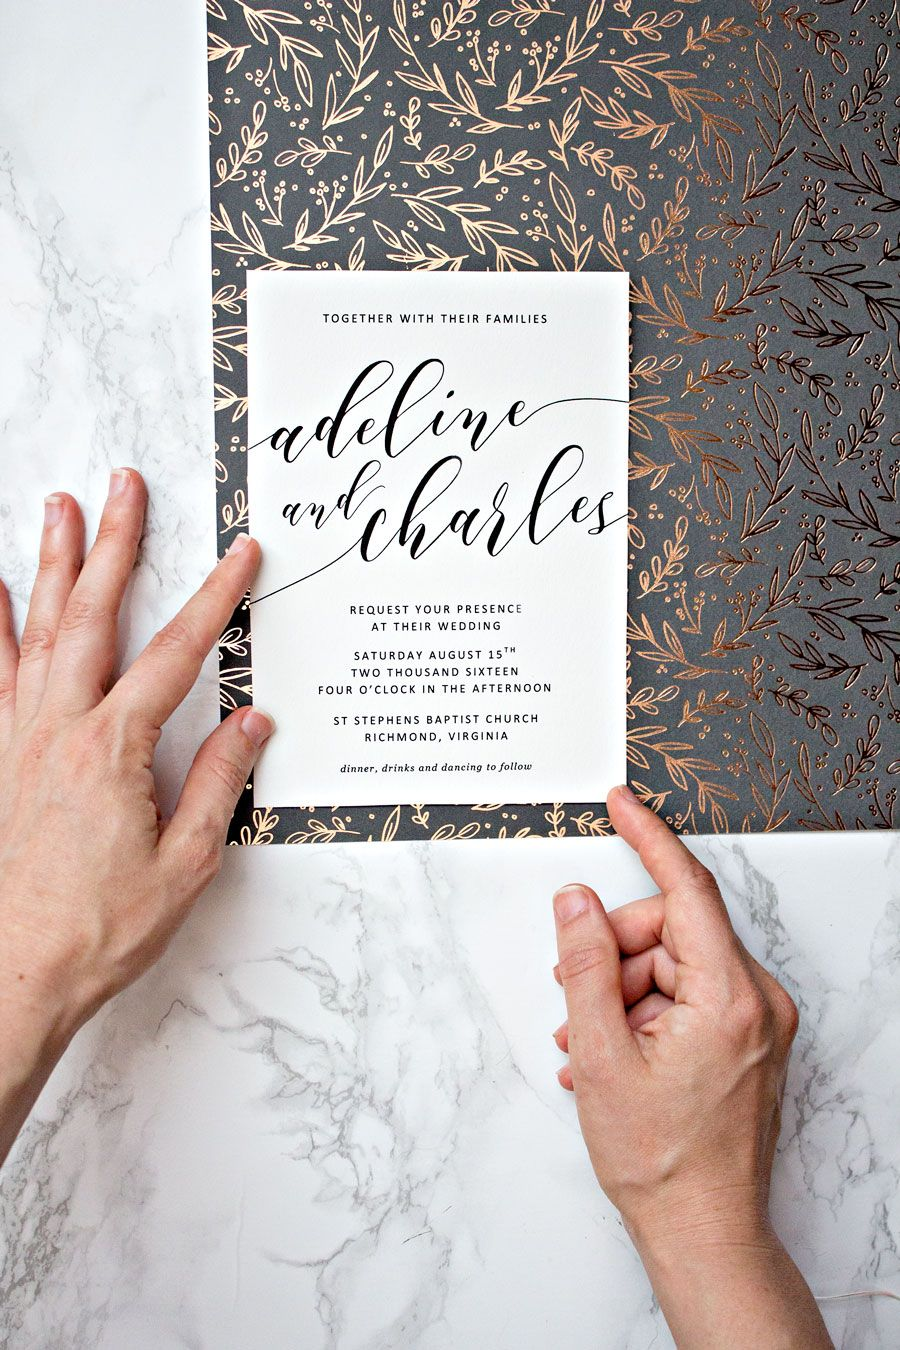 To spruce up your printable wedding invitations we recommend adding